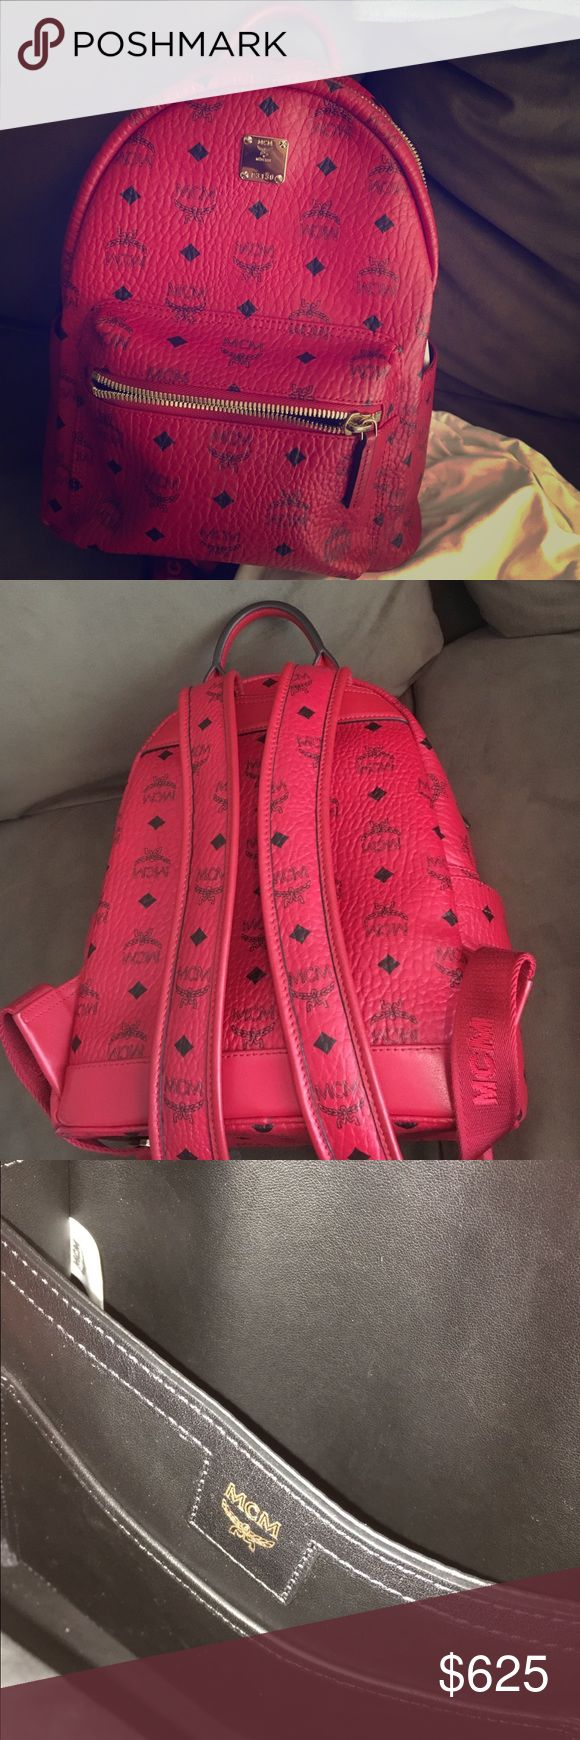 Authentic mcm backpack ruby red Authentic mcm bag ruby red (all prints line up and serial tag is shown in photo) Best deal you can get on here! If you need help to see this is authentic just ask. Retail was 750 and they are all sold out so price firm Great condition barley used  Price negotiable if made by different payment MCM Bags Backpacks